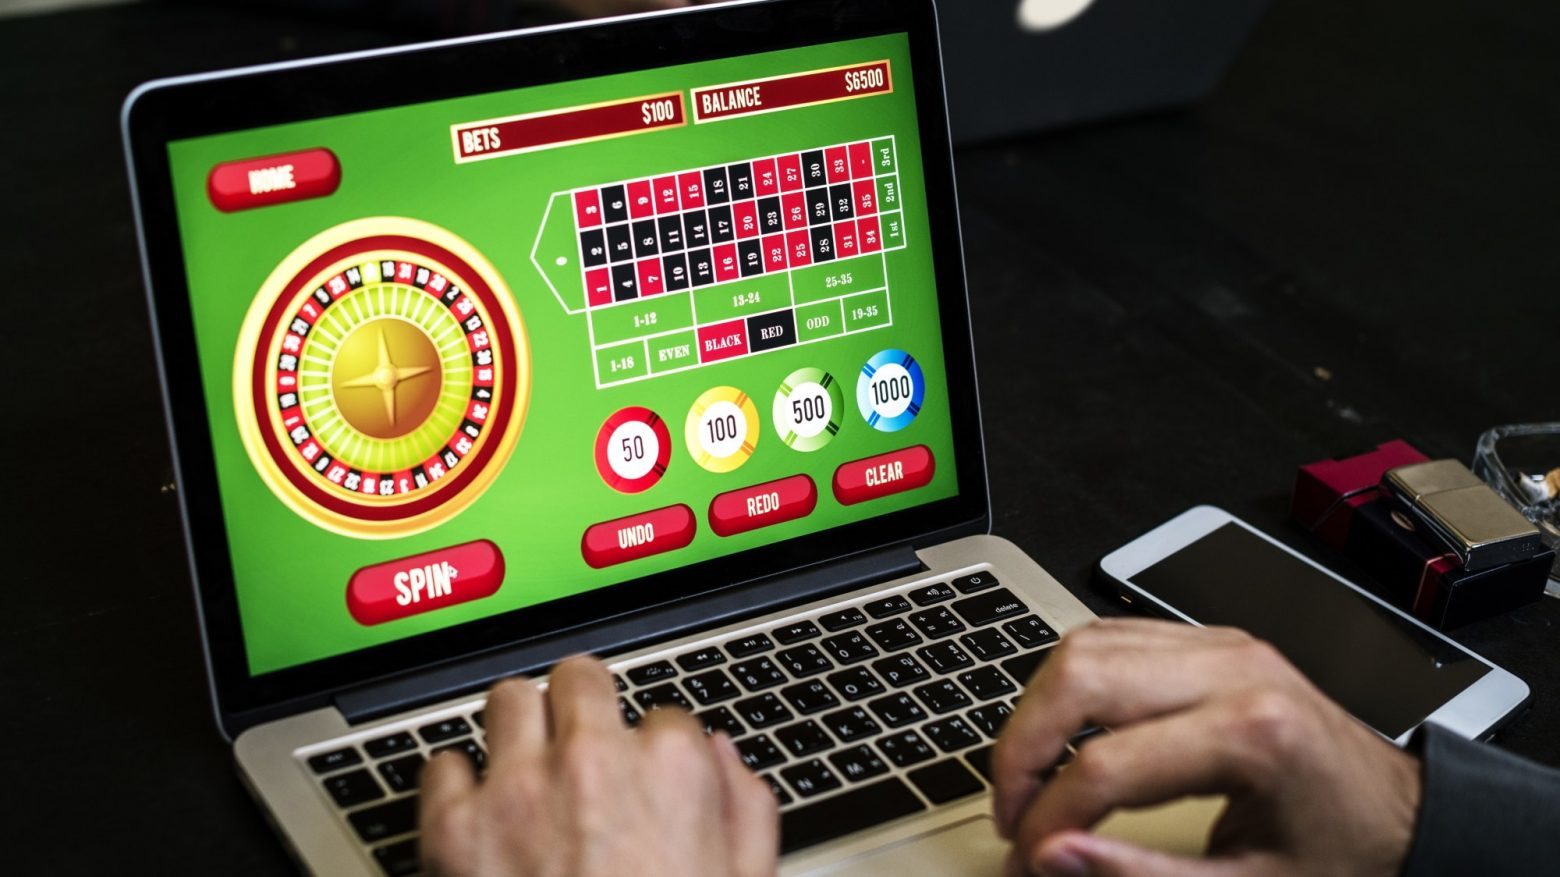 Tips For Finding the Best Internet Casino